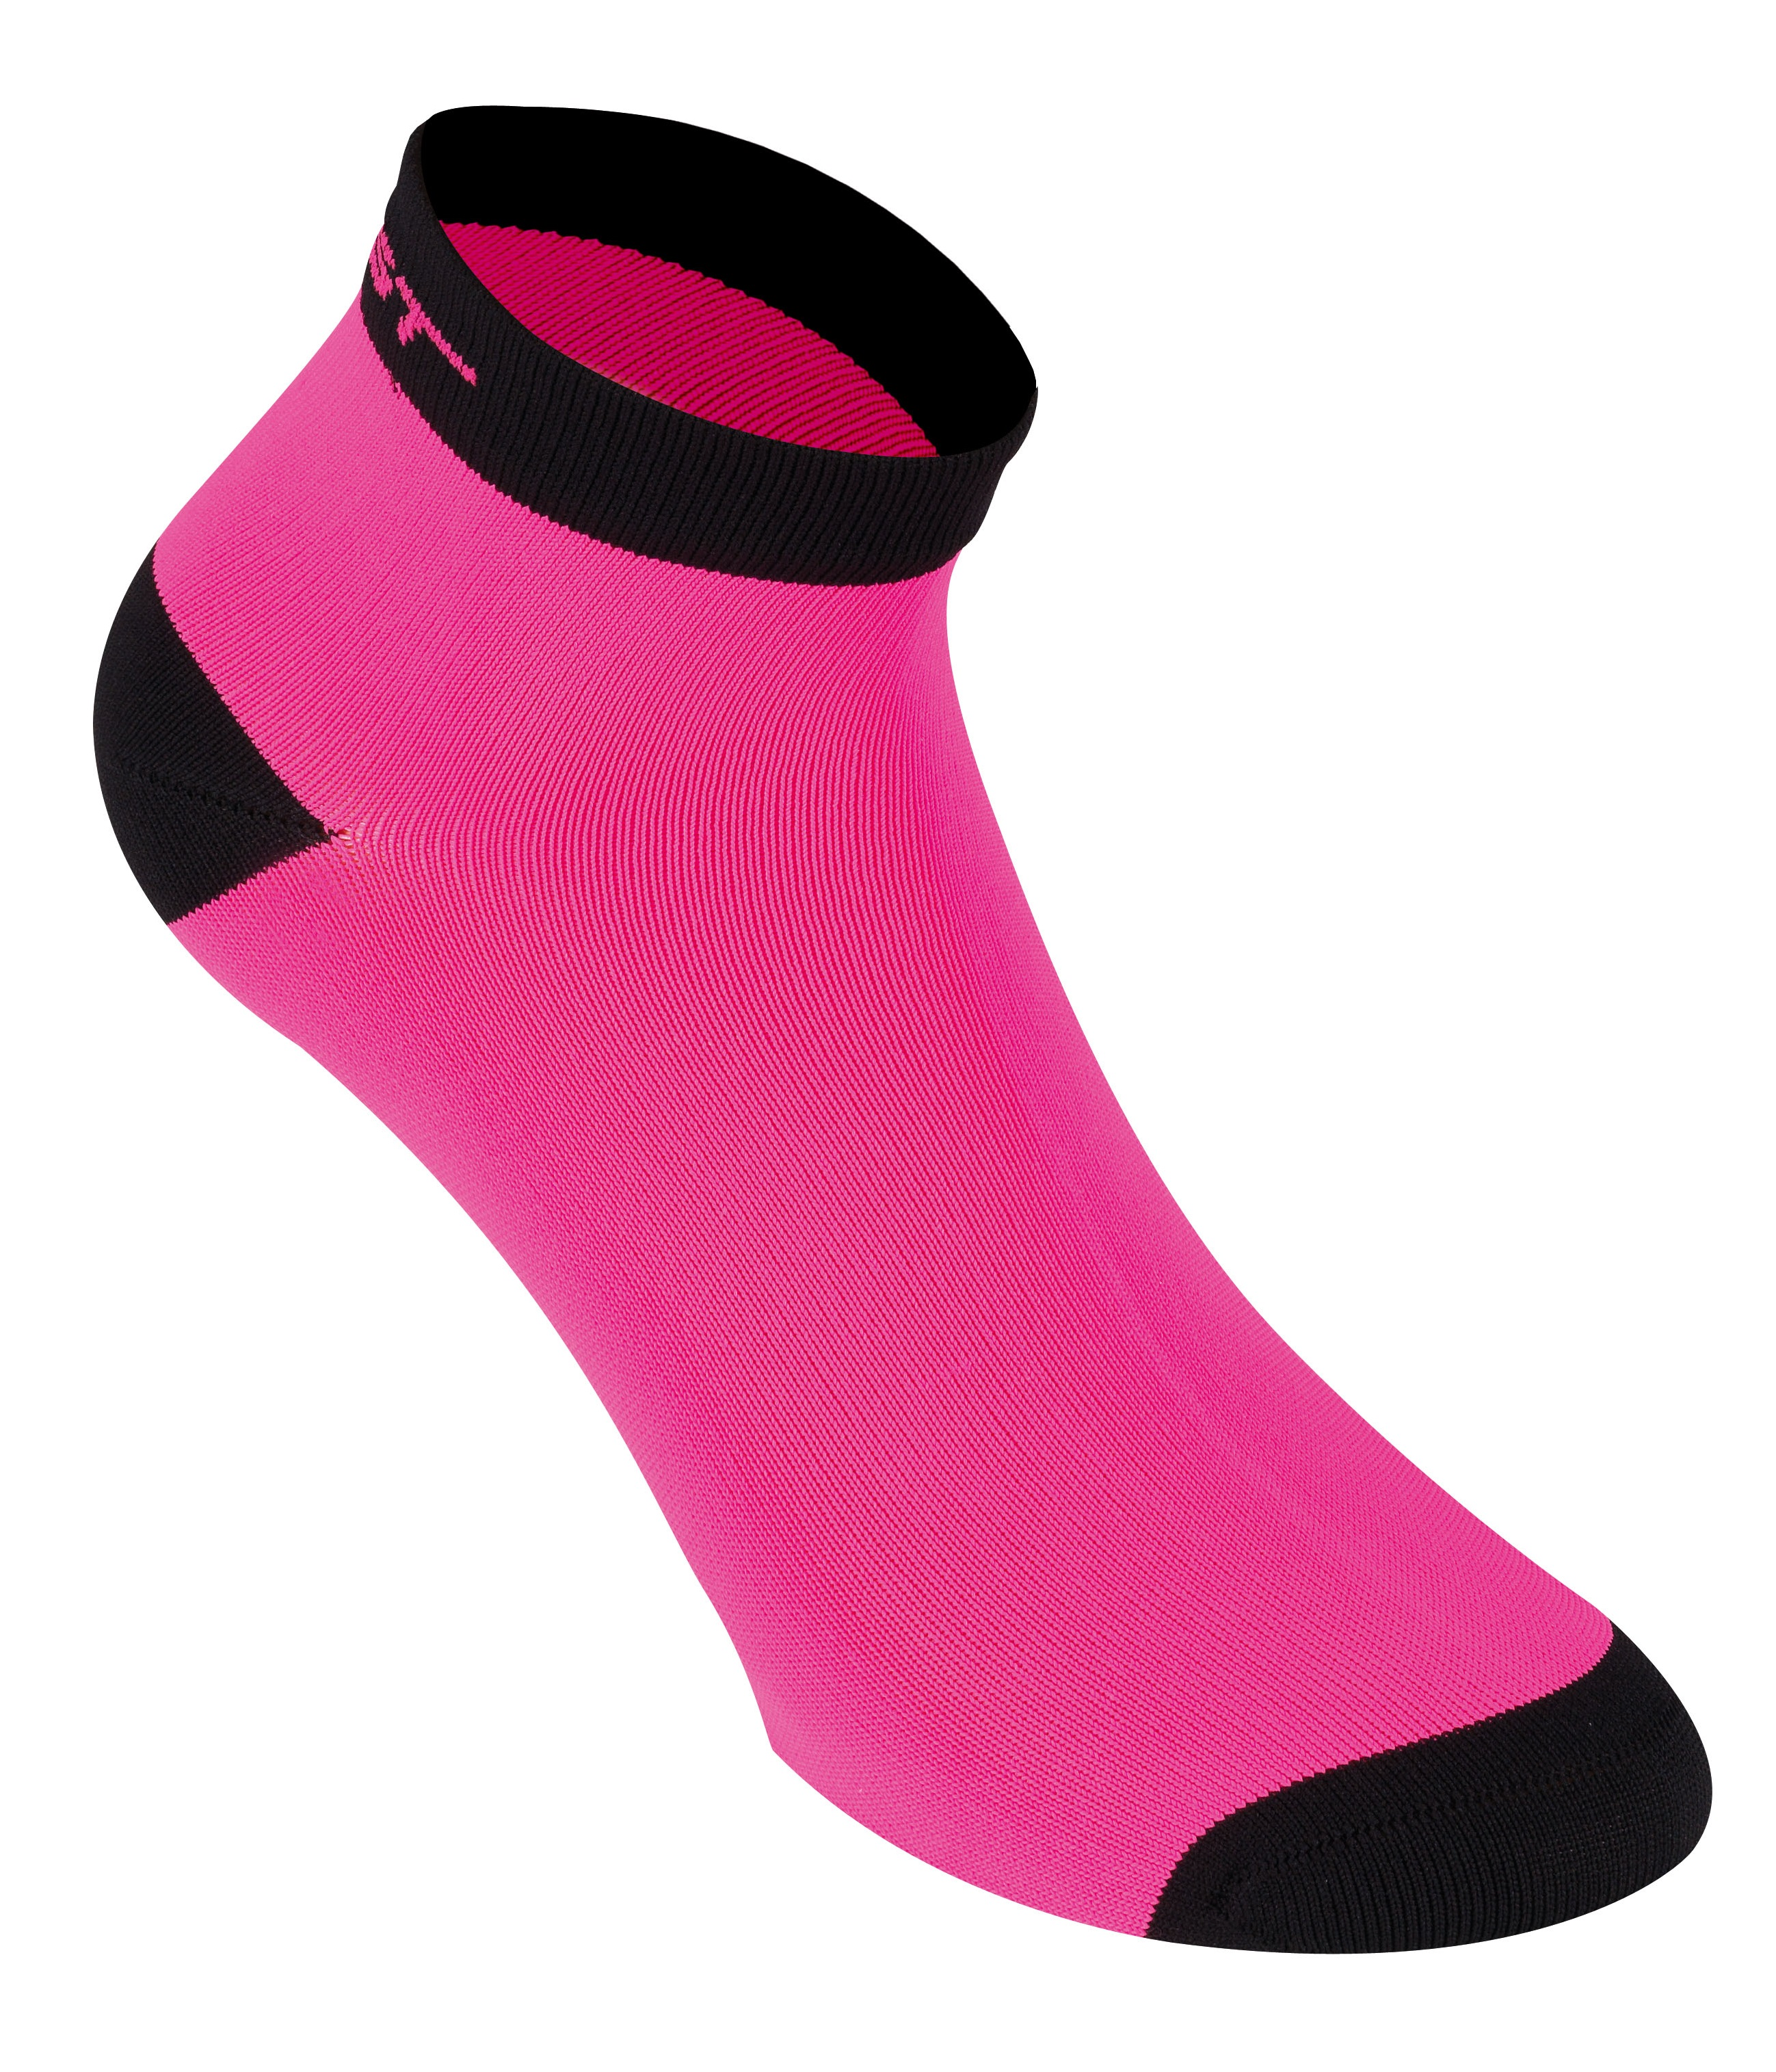 Calzino Gist Skinlife Donna ROSA FLUO